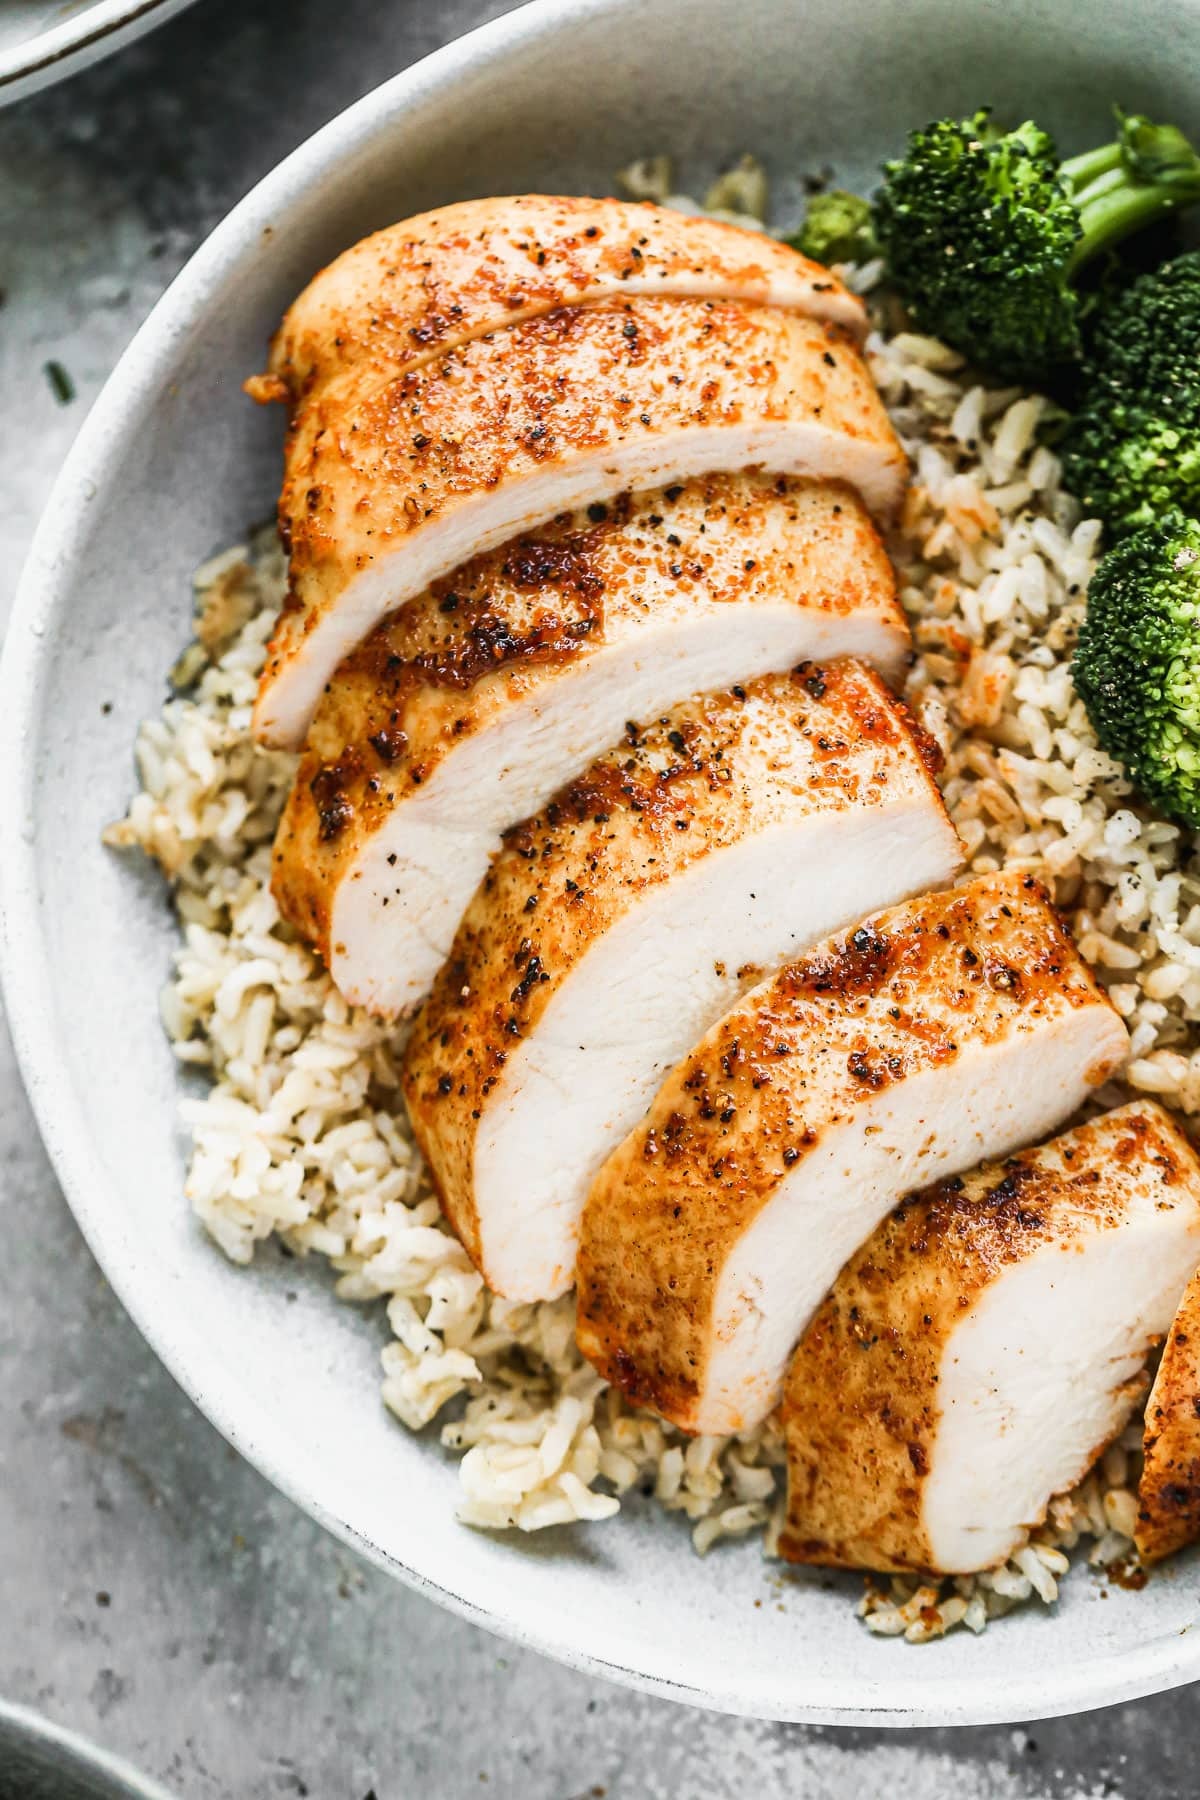 A sliced oven roasted chicken breast in a bowl